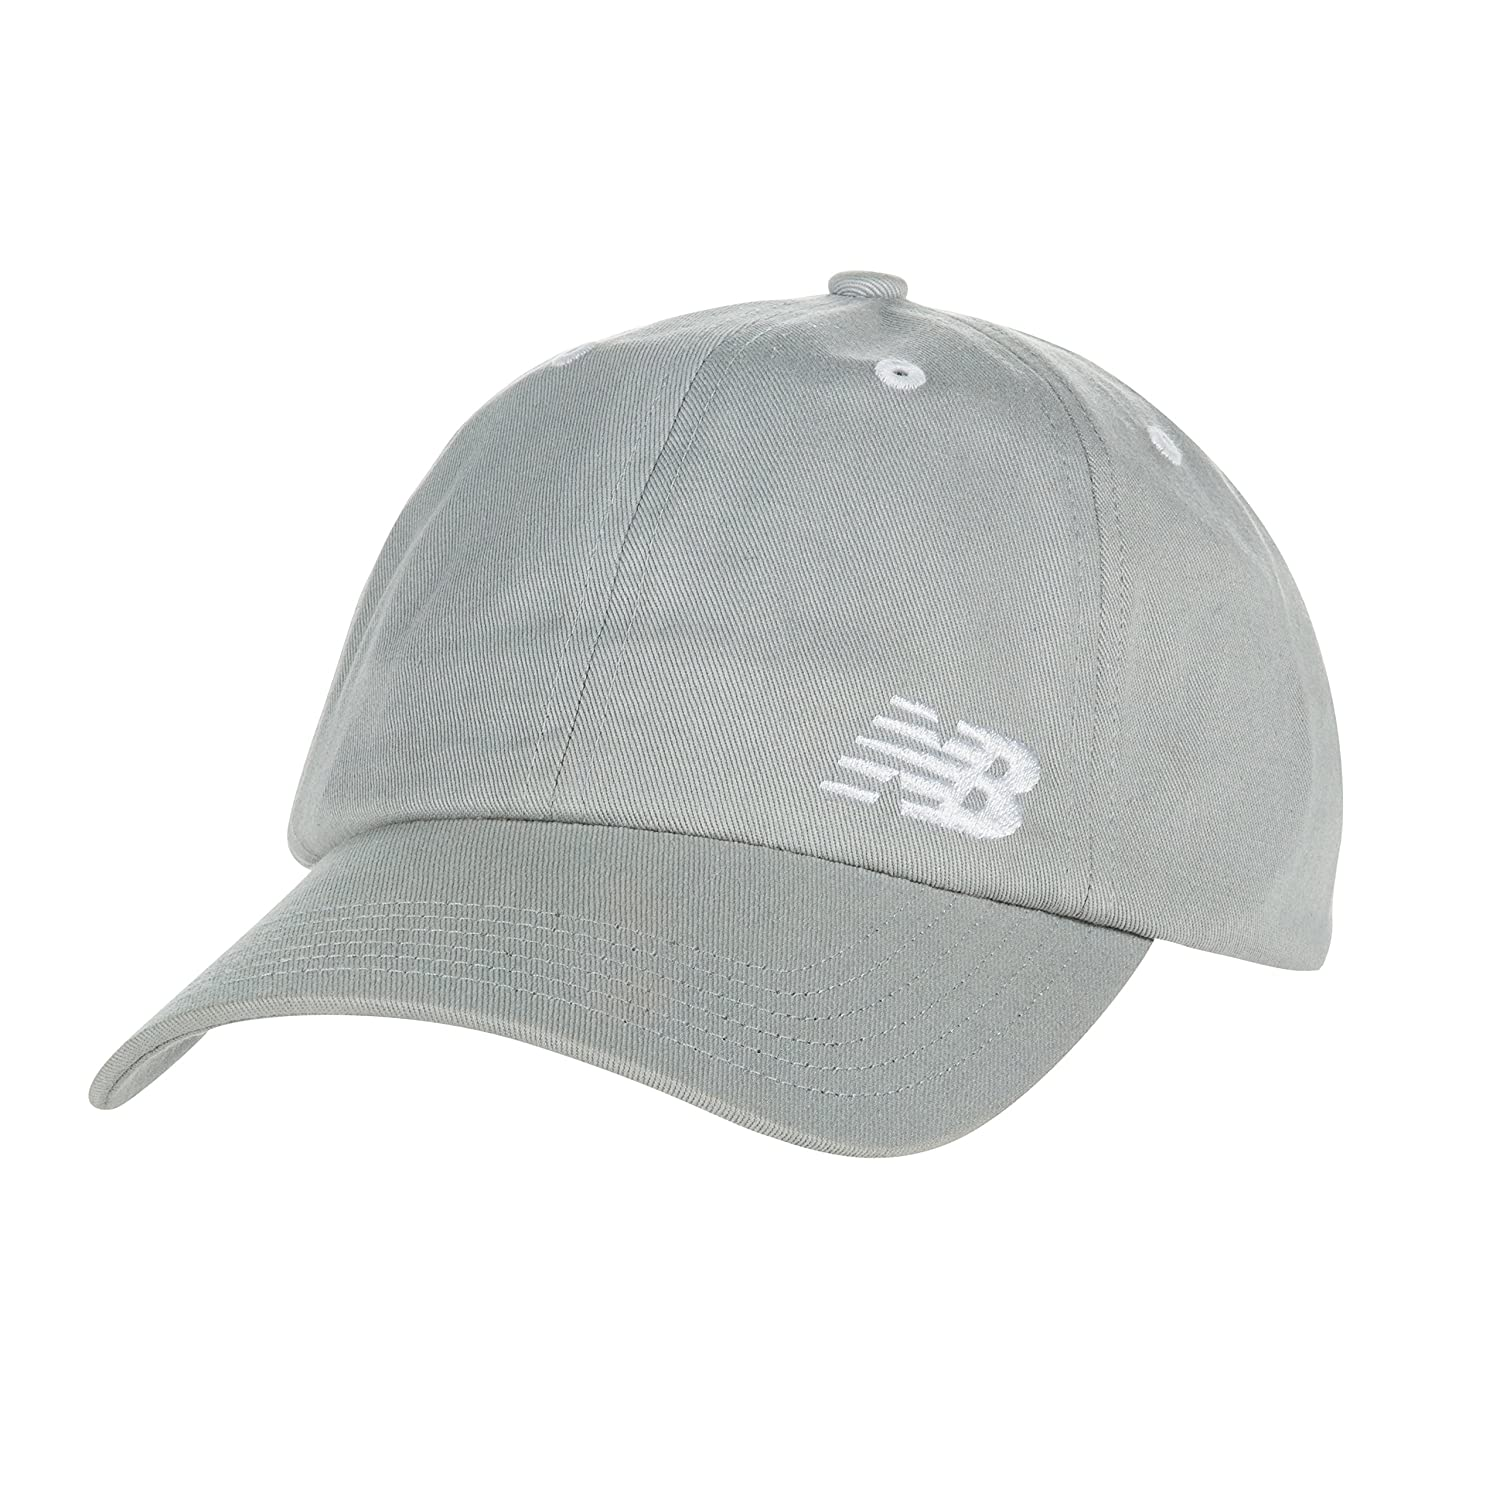 New Balance 6-Panel Curved Brim Gorra, Unisex, Stone Grey, Talla ...